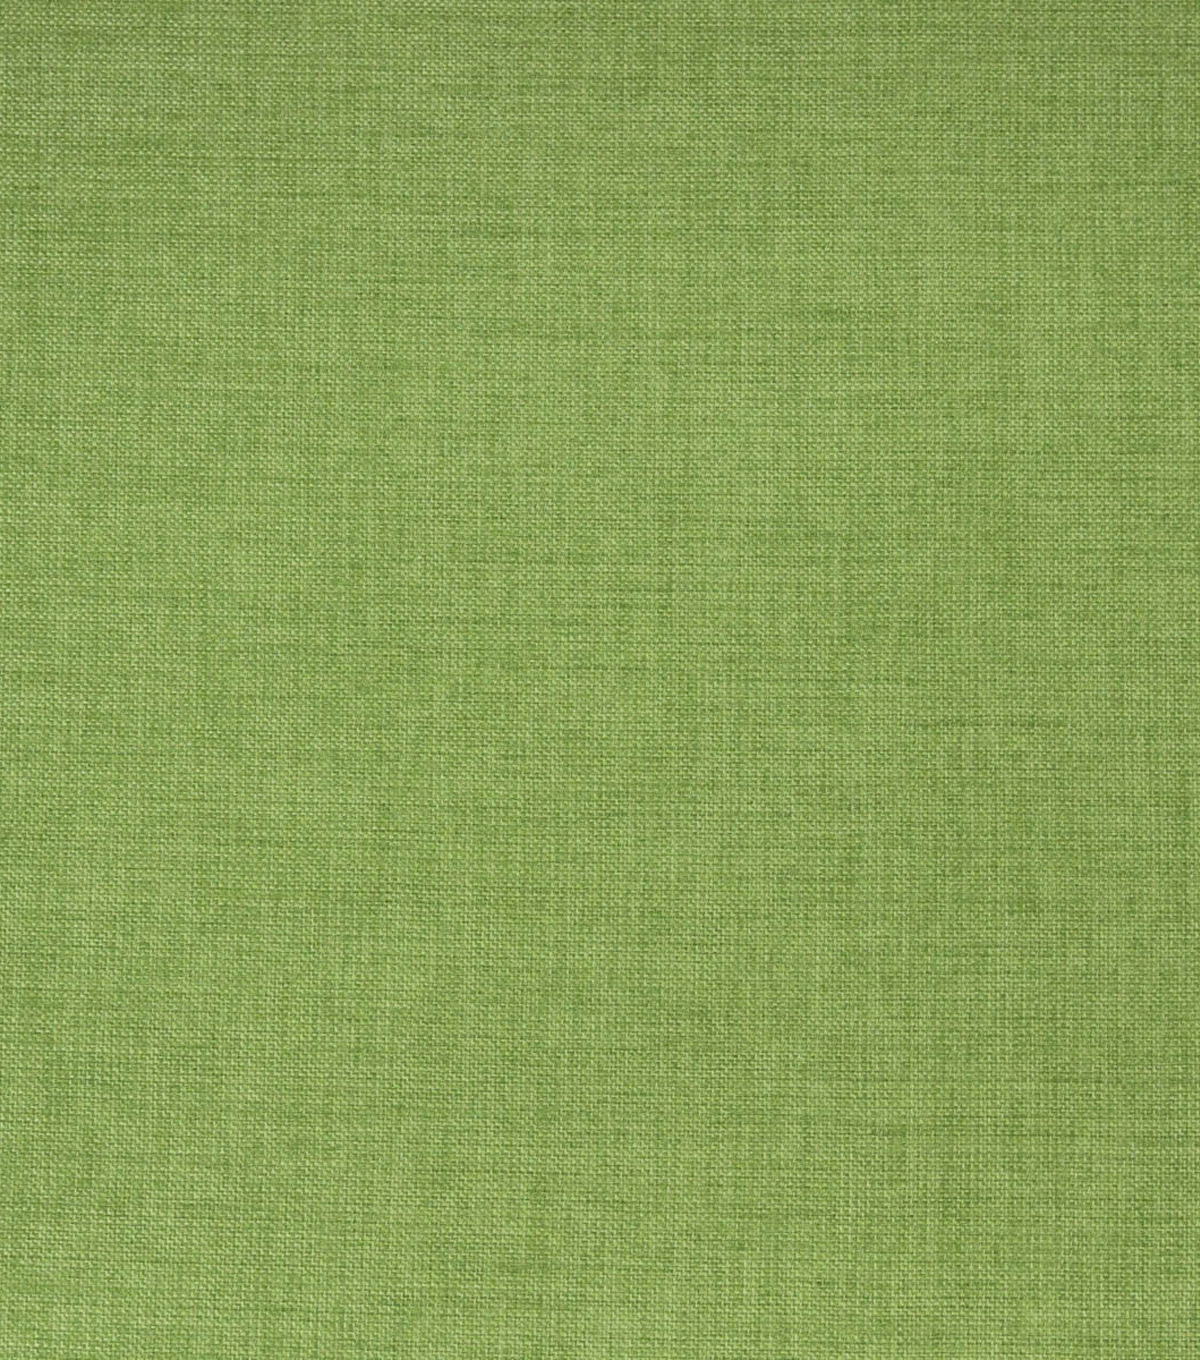 Solarium Outdoor Fabric 54\u0022-Rave Willow